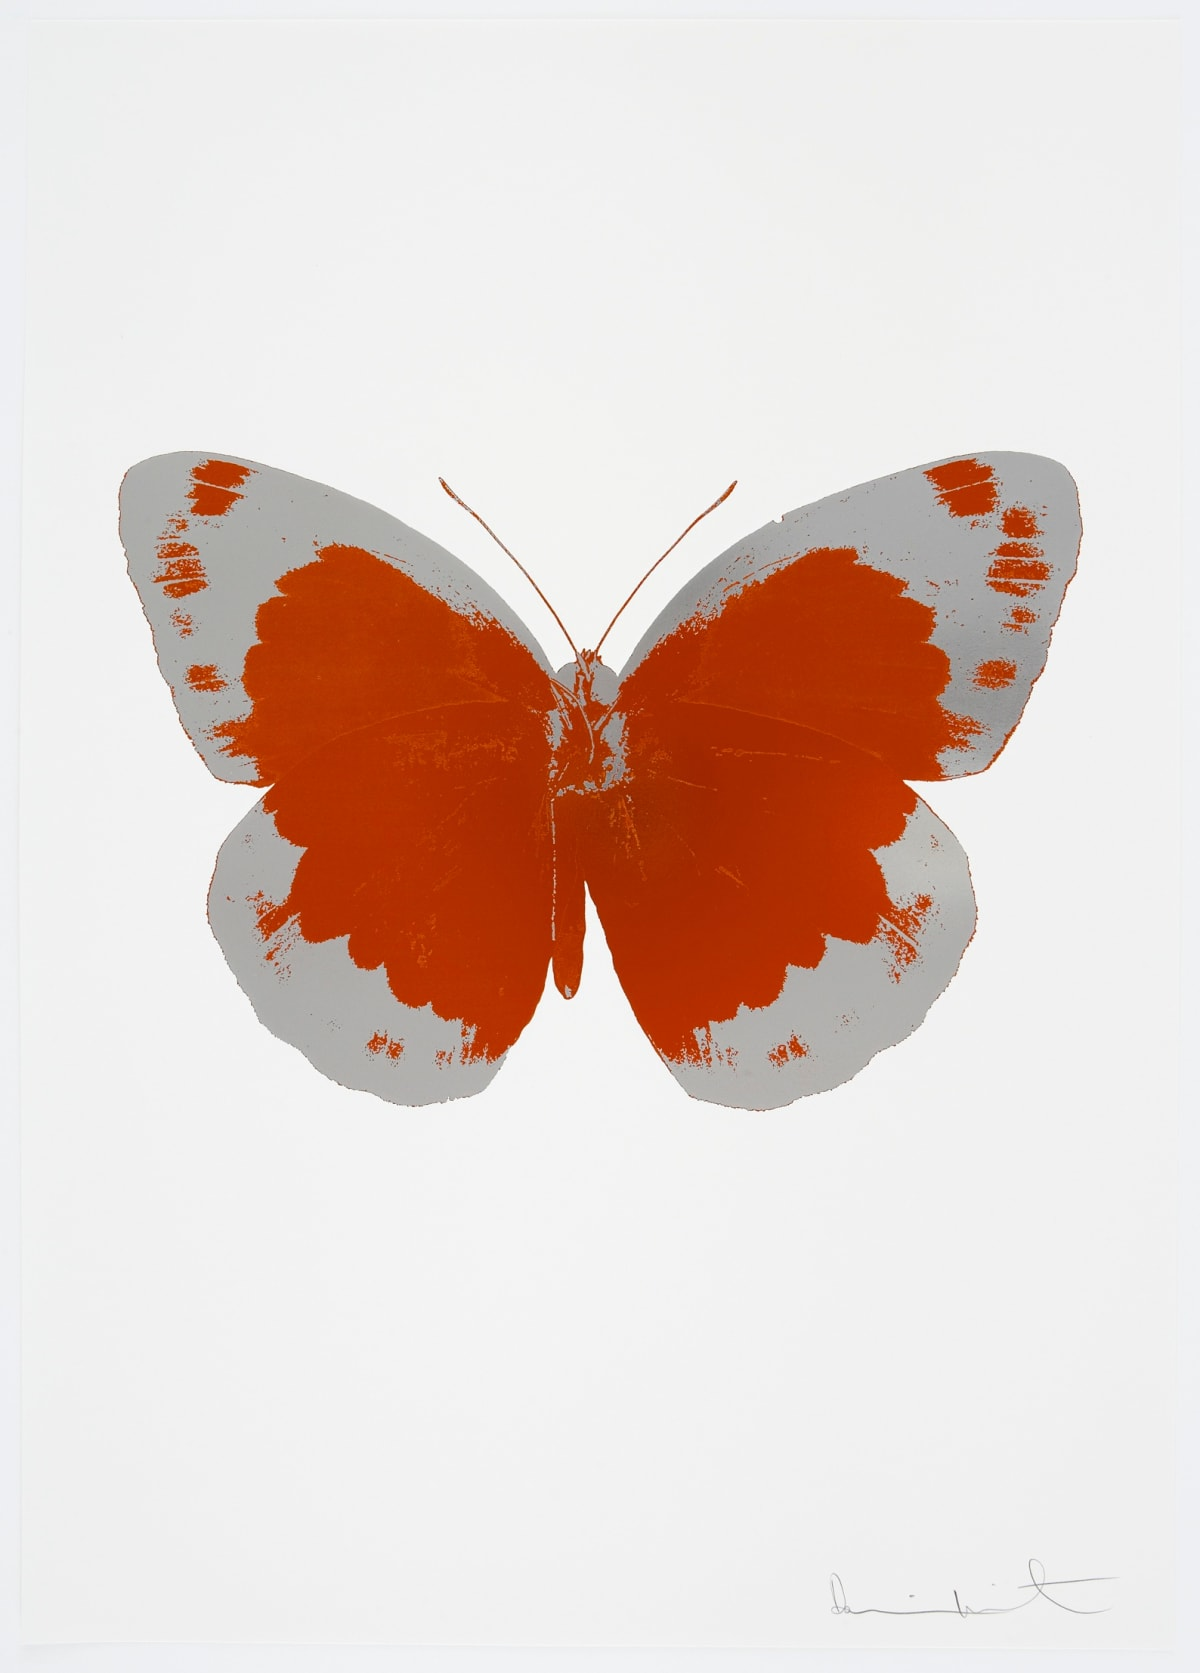 Damien Hirst The Souls II - Prairie Copper/Silver Gloss/Blind Impression, 2010 2 colour foil block on 300gsm Arches 88 archival paper. Signed and numbered. Published by Paul Stolper and Other Criteria 72 x 51cm OC7849 / 658-32 Edition of 15